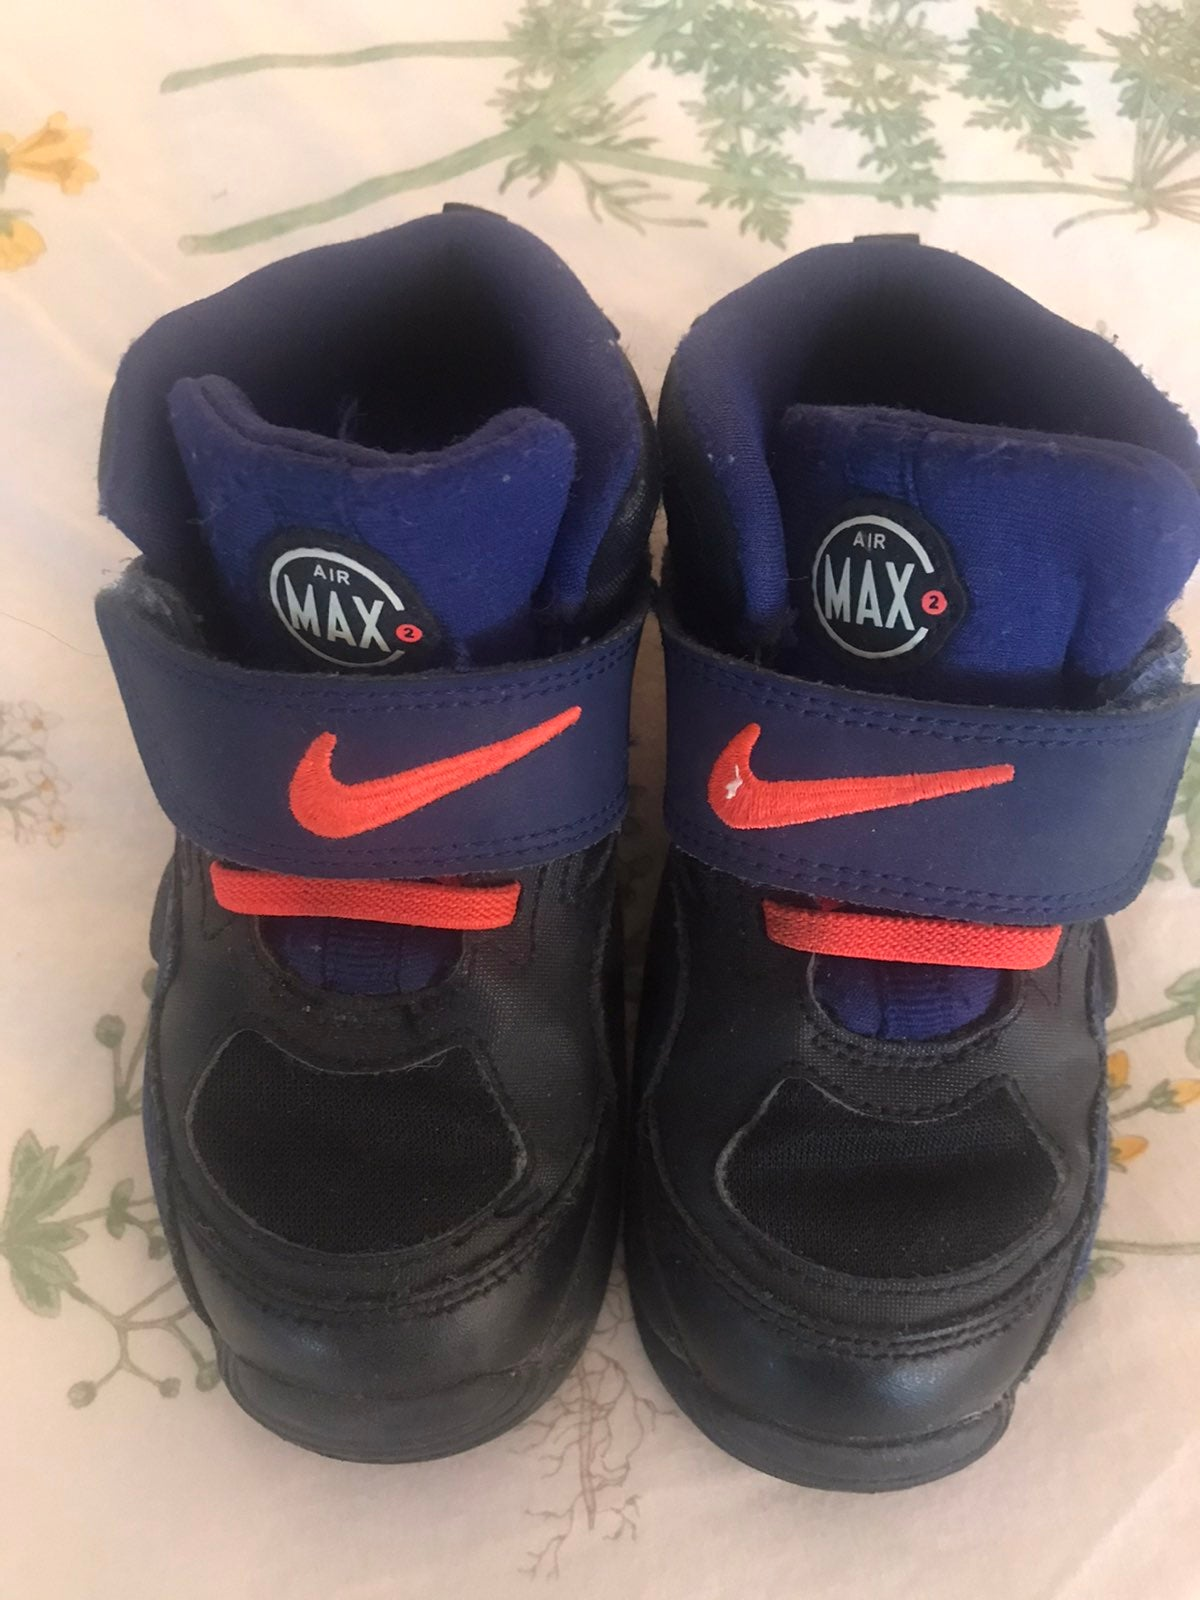 Nike Air Max Toddler Boy Shoes Blue 10